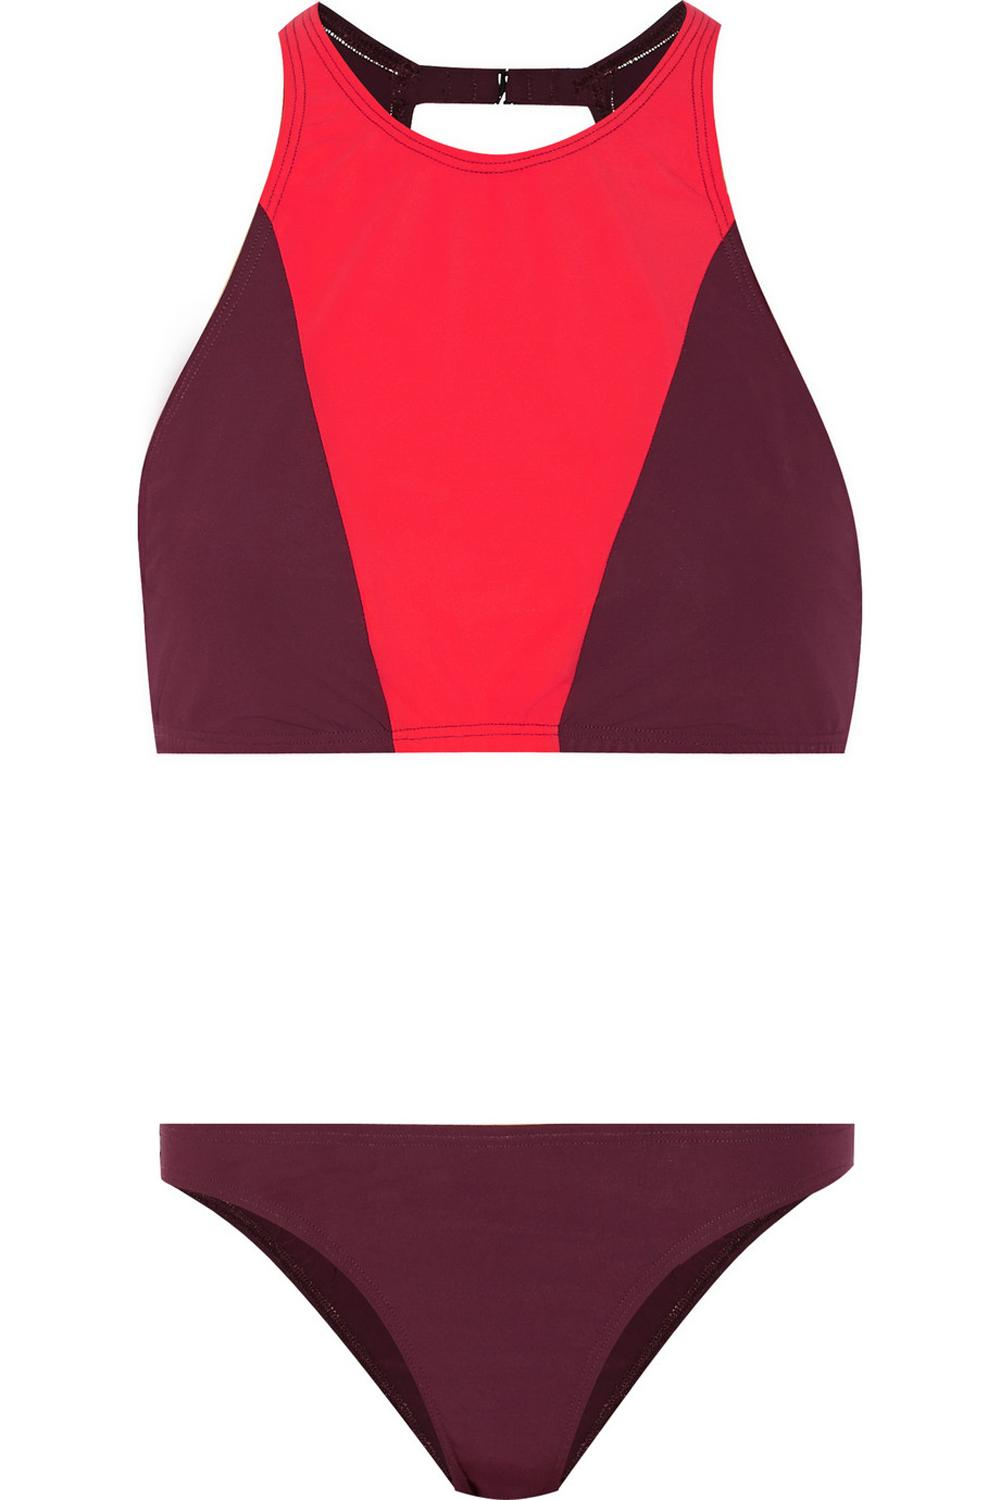 Our guide to summer's best bikinis...http://t.co/K1JewrM6Ju http://t.co/05ayBLr8rc